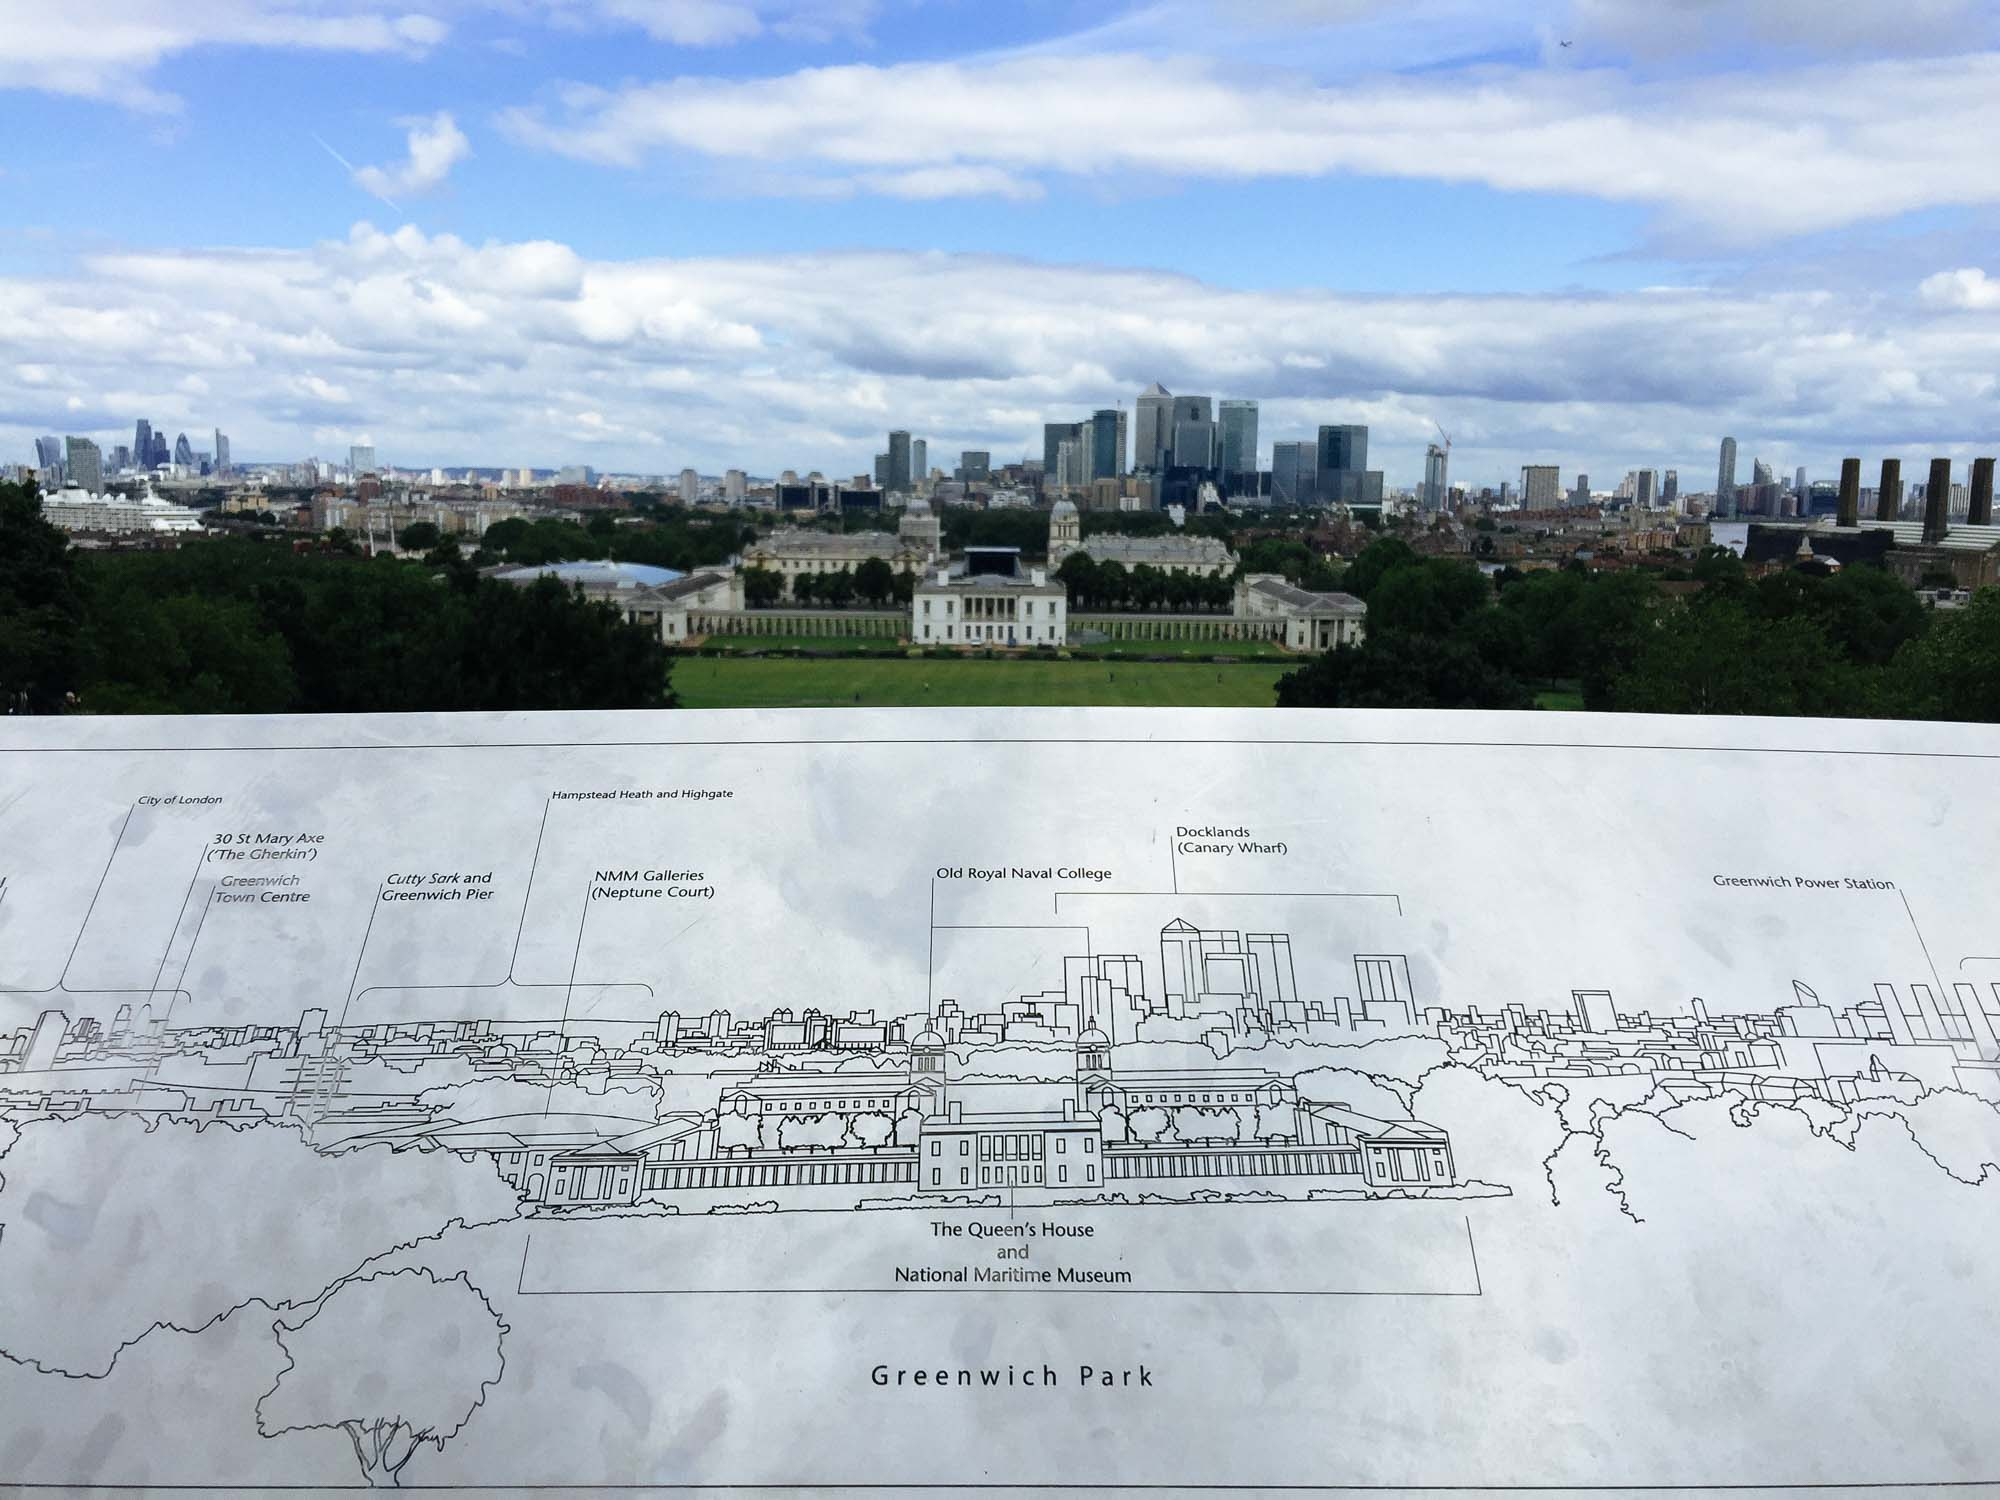 Best views in London - Greenwich